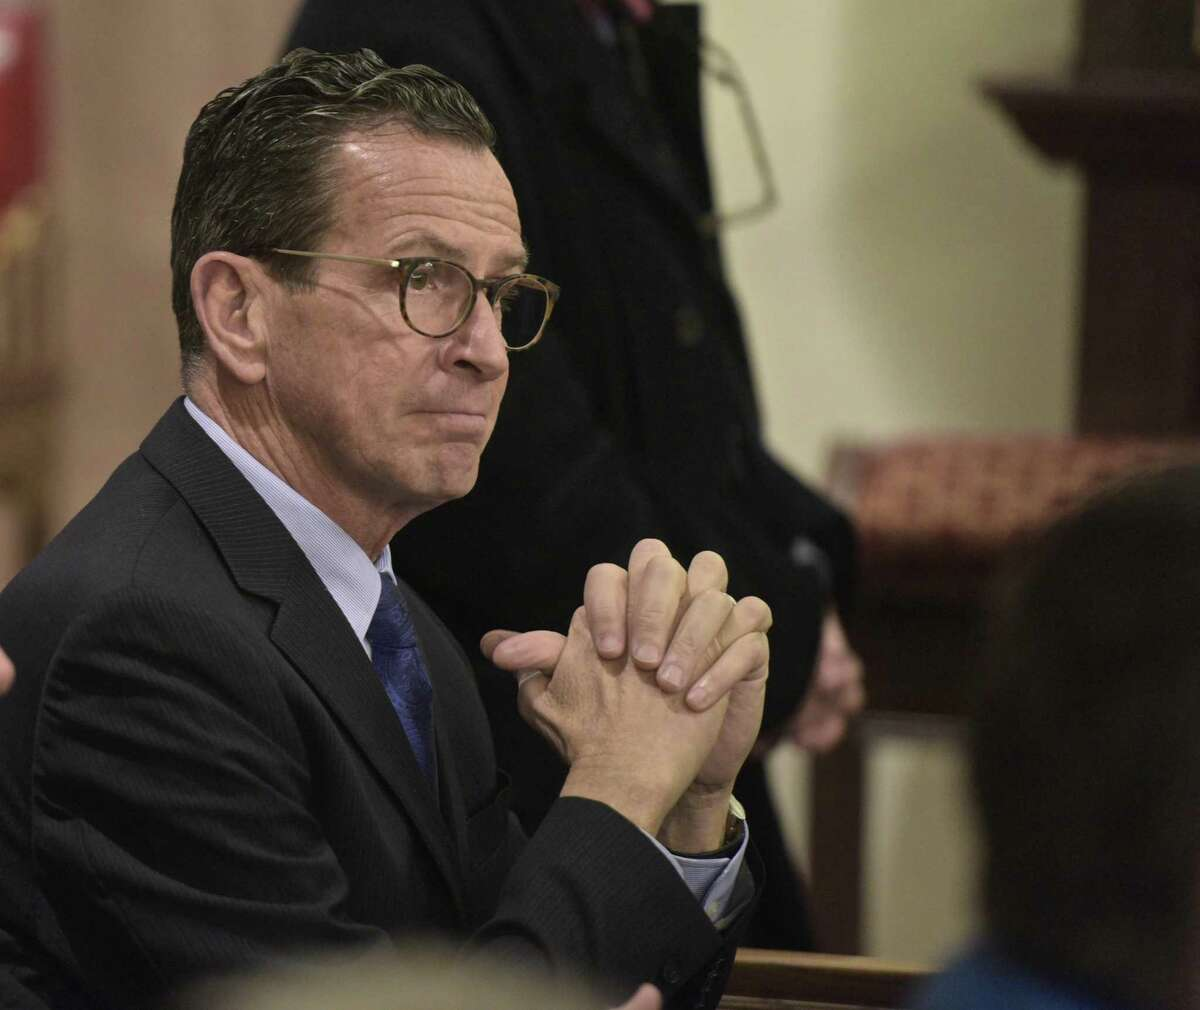 Gov. Dannel Malloy at St. Rose of Lima church in Newtown in 2017.